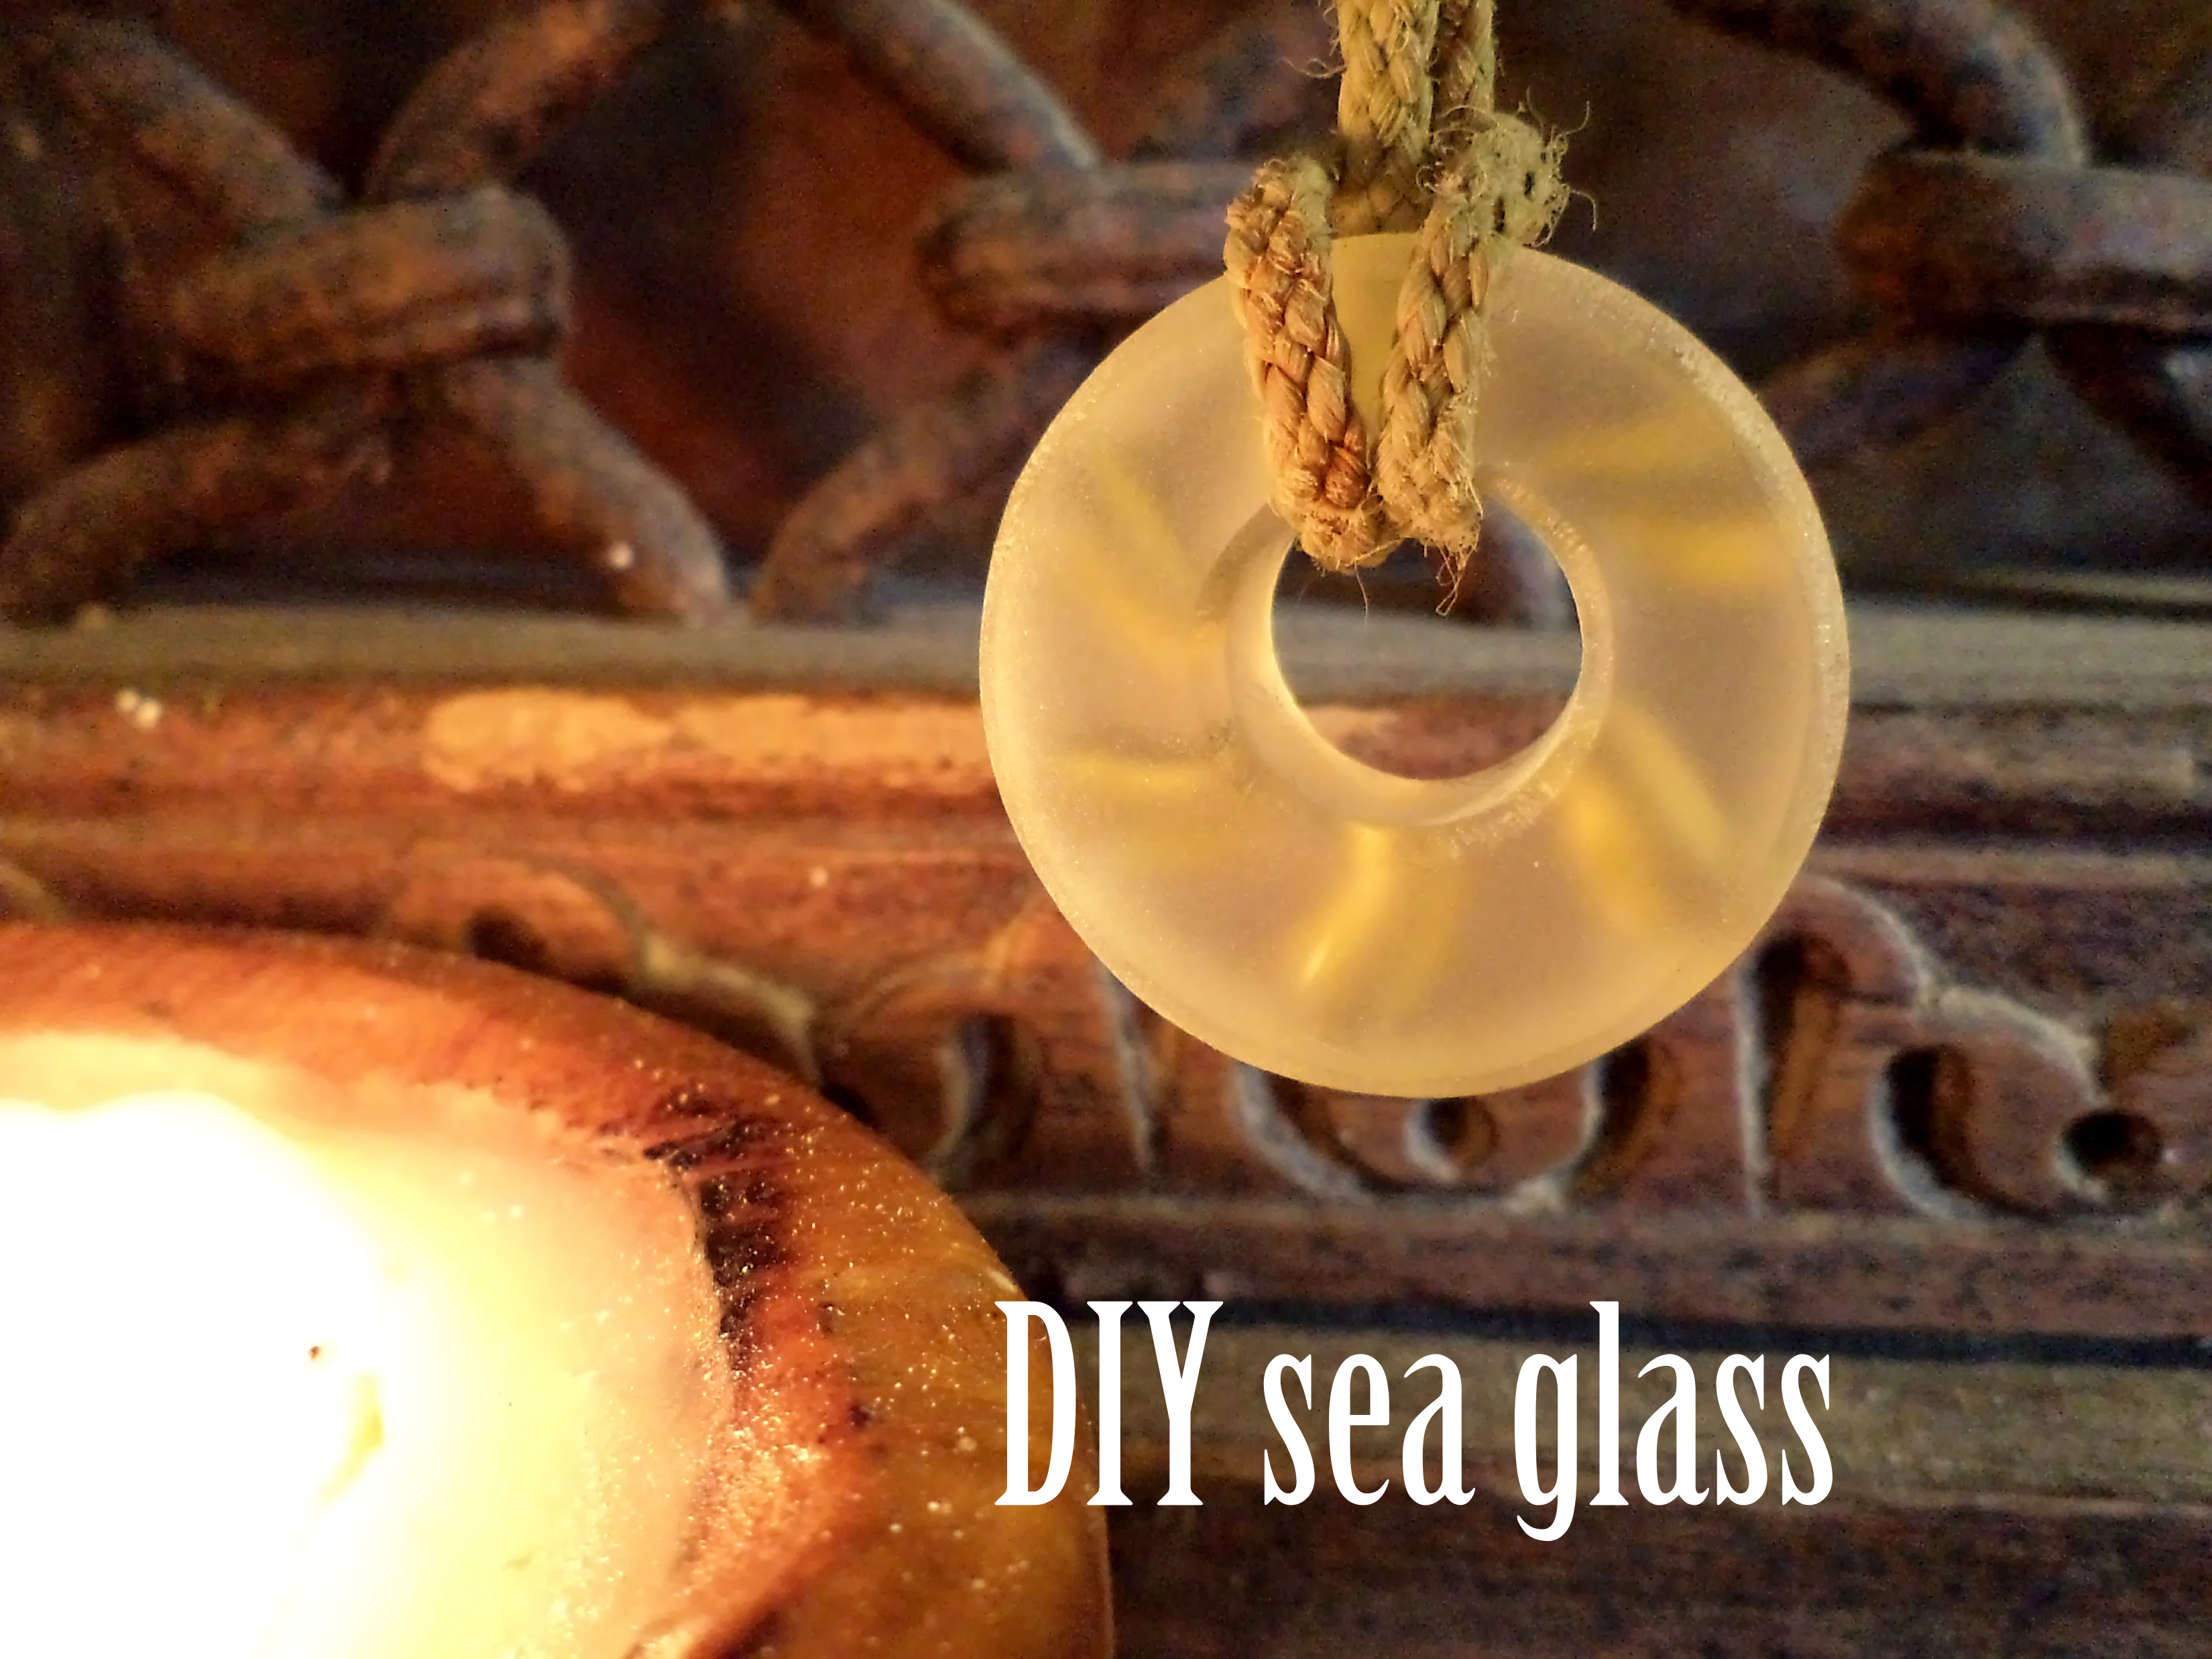 DIY Sea Glass